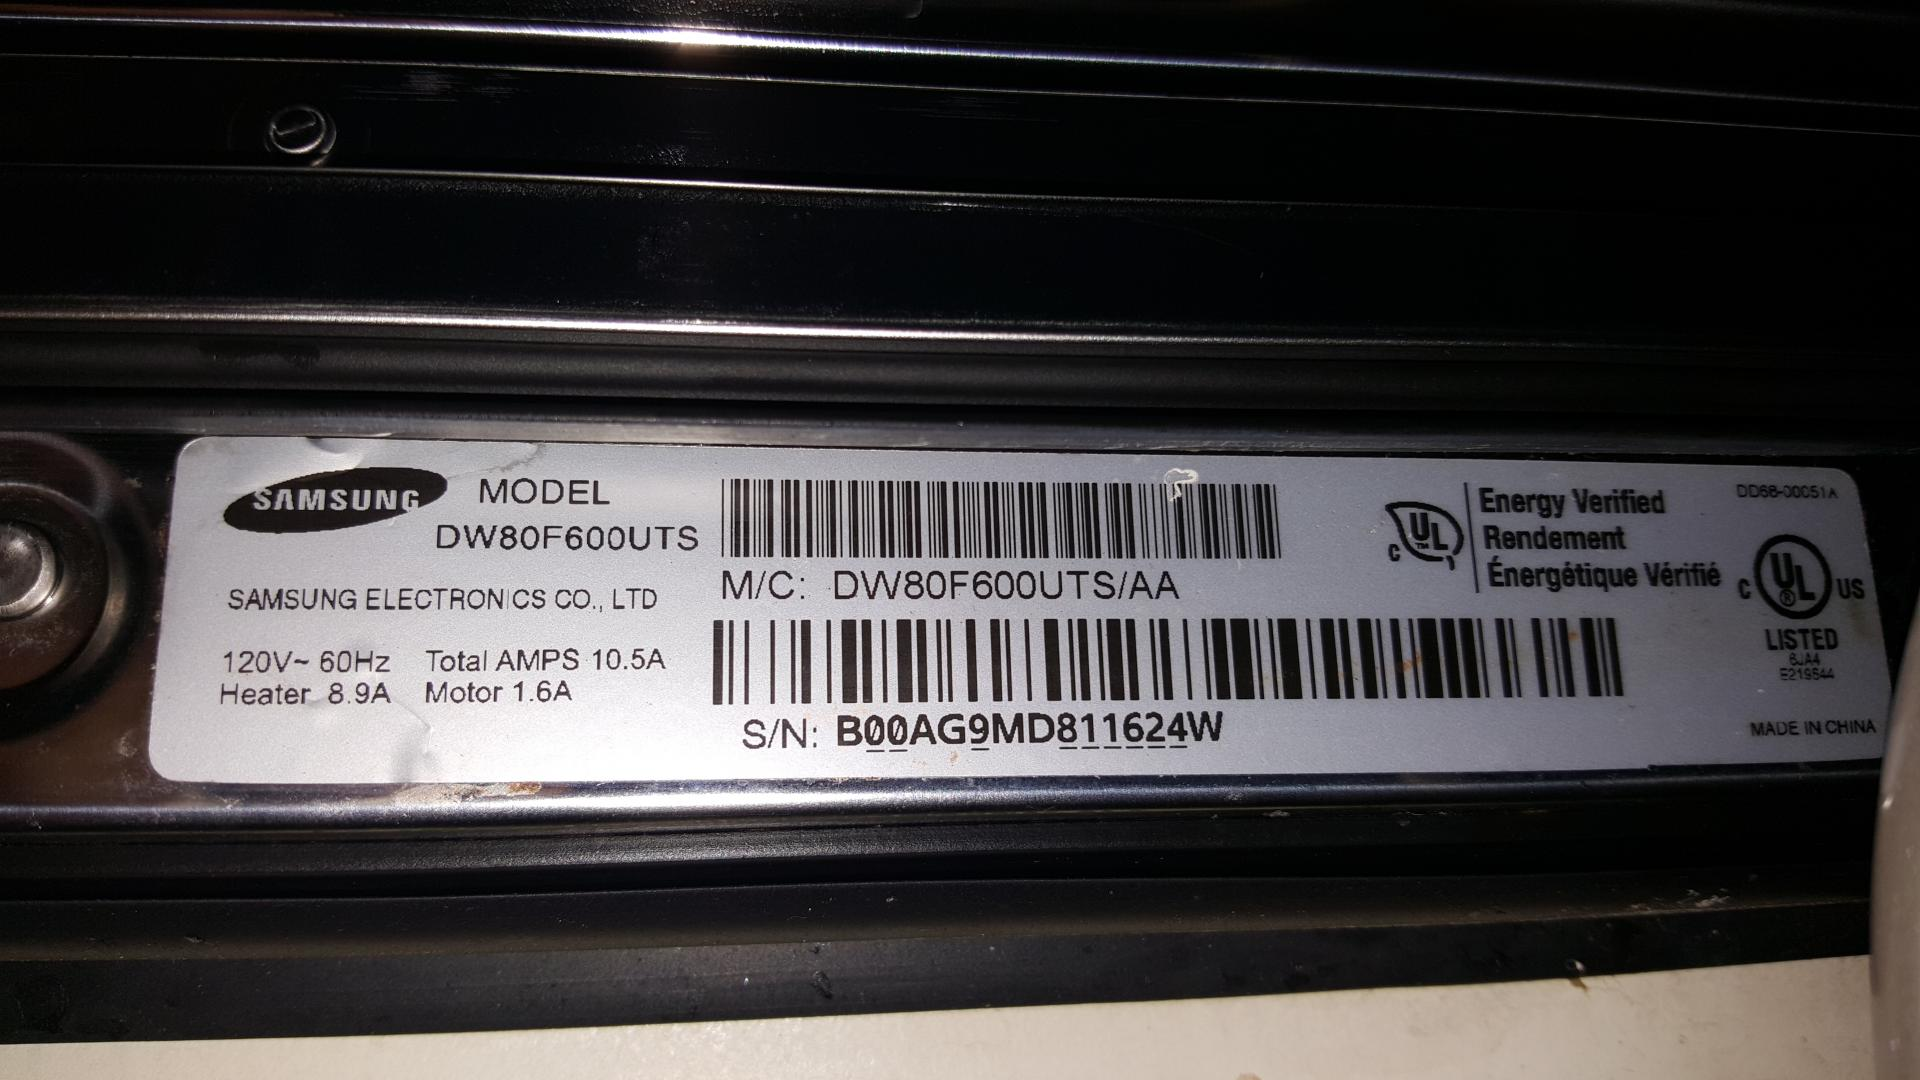 Samsung Dw80f600uts No Power Nor Touchpad Response Until Applianceblog Repair Forums